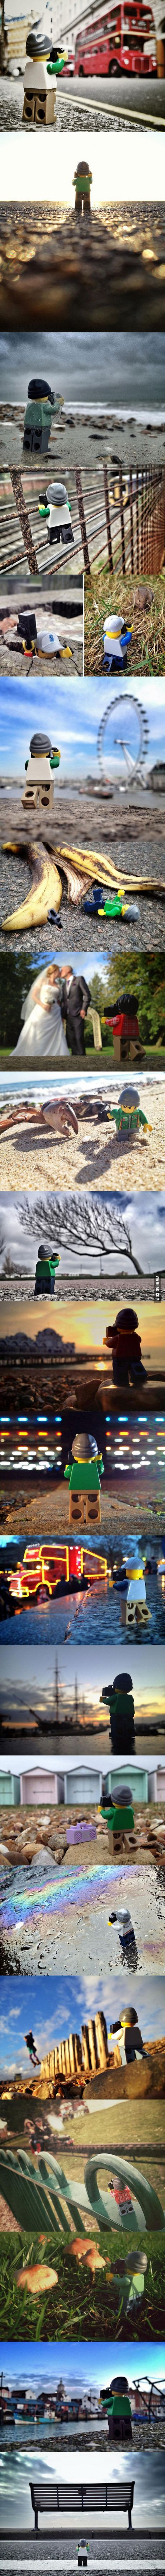 Andrew Whyte spent 365 days following this little LEGO photographer around and taking pictures.